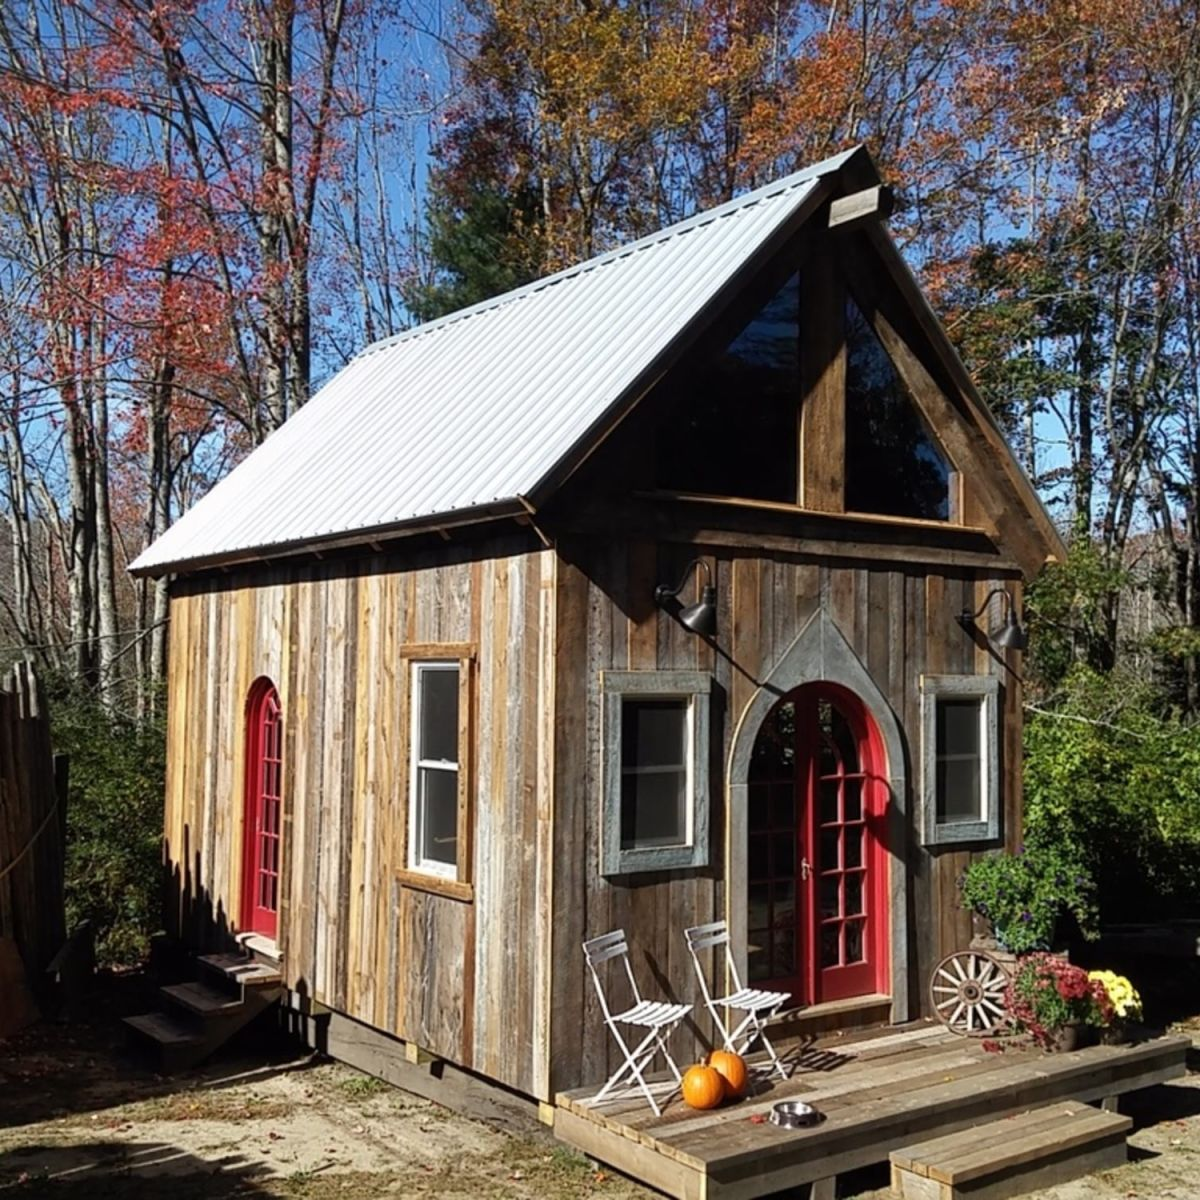 Houses For Rent Listings: Cabin For Rent In Null, Maine